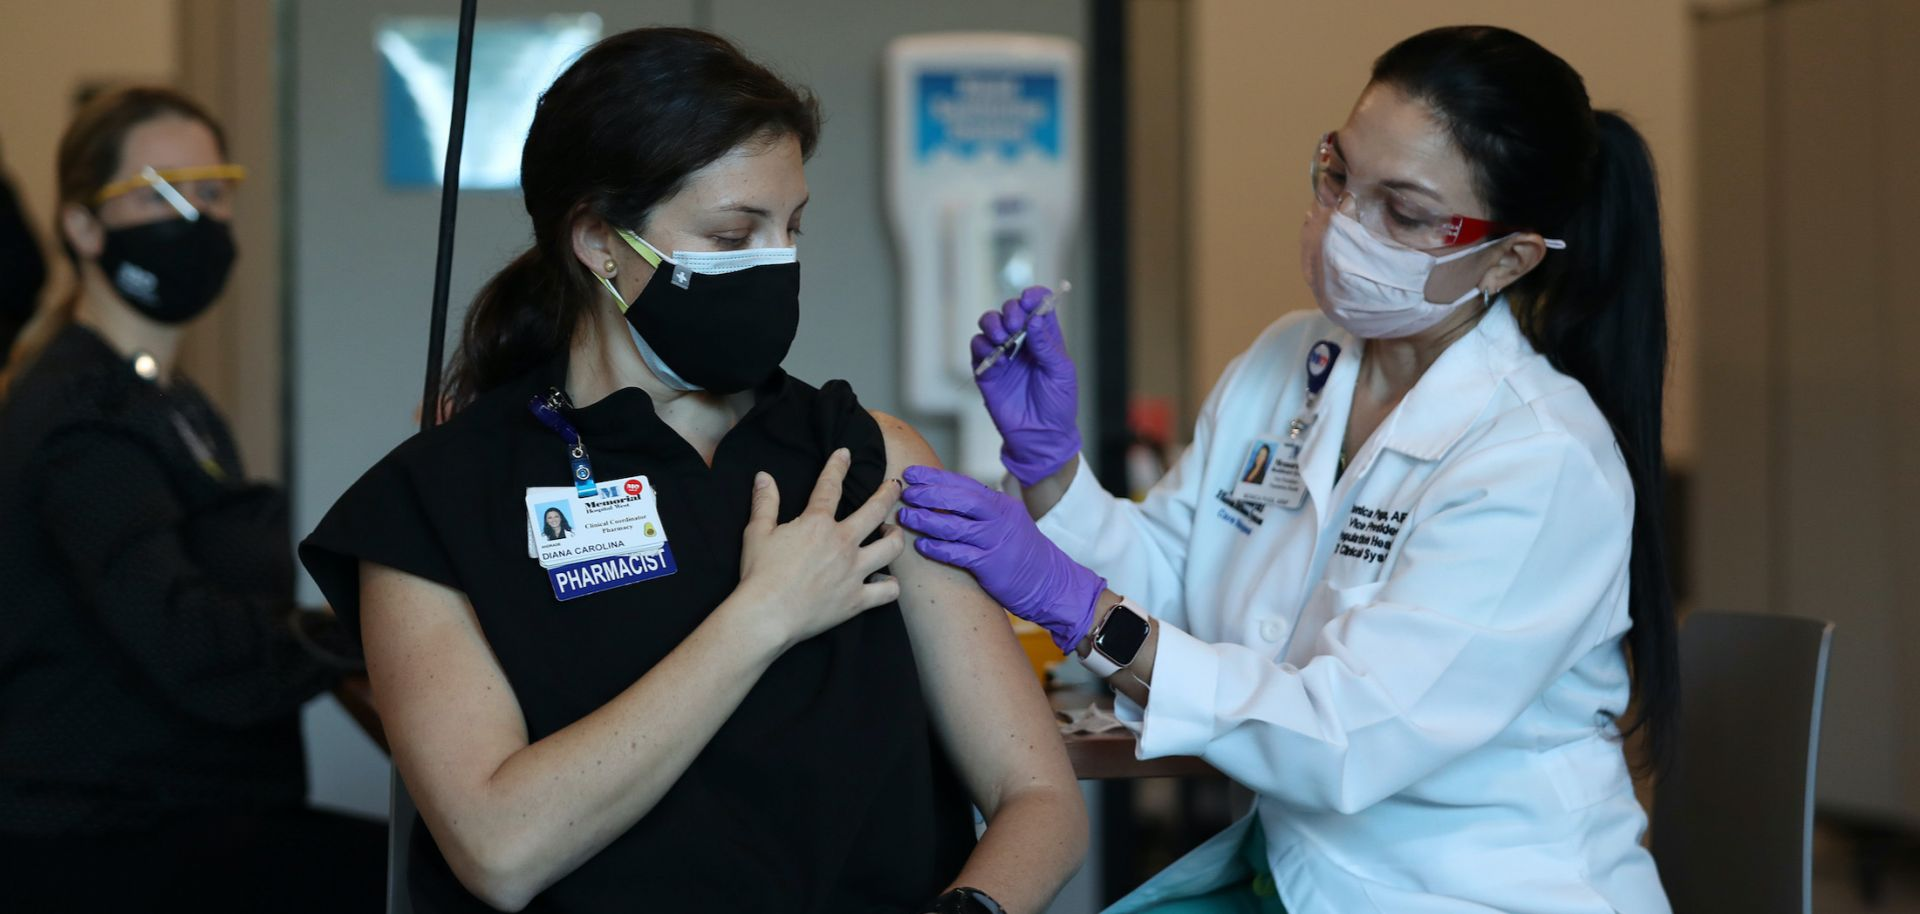 A pharmacist receives her first dose of the Pfizer COVID-19 vaccine in Miramar, Florida, on Dec. 14, 2020.